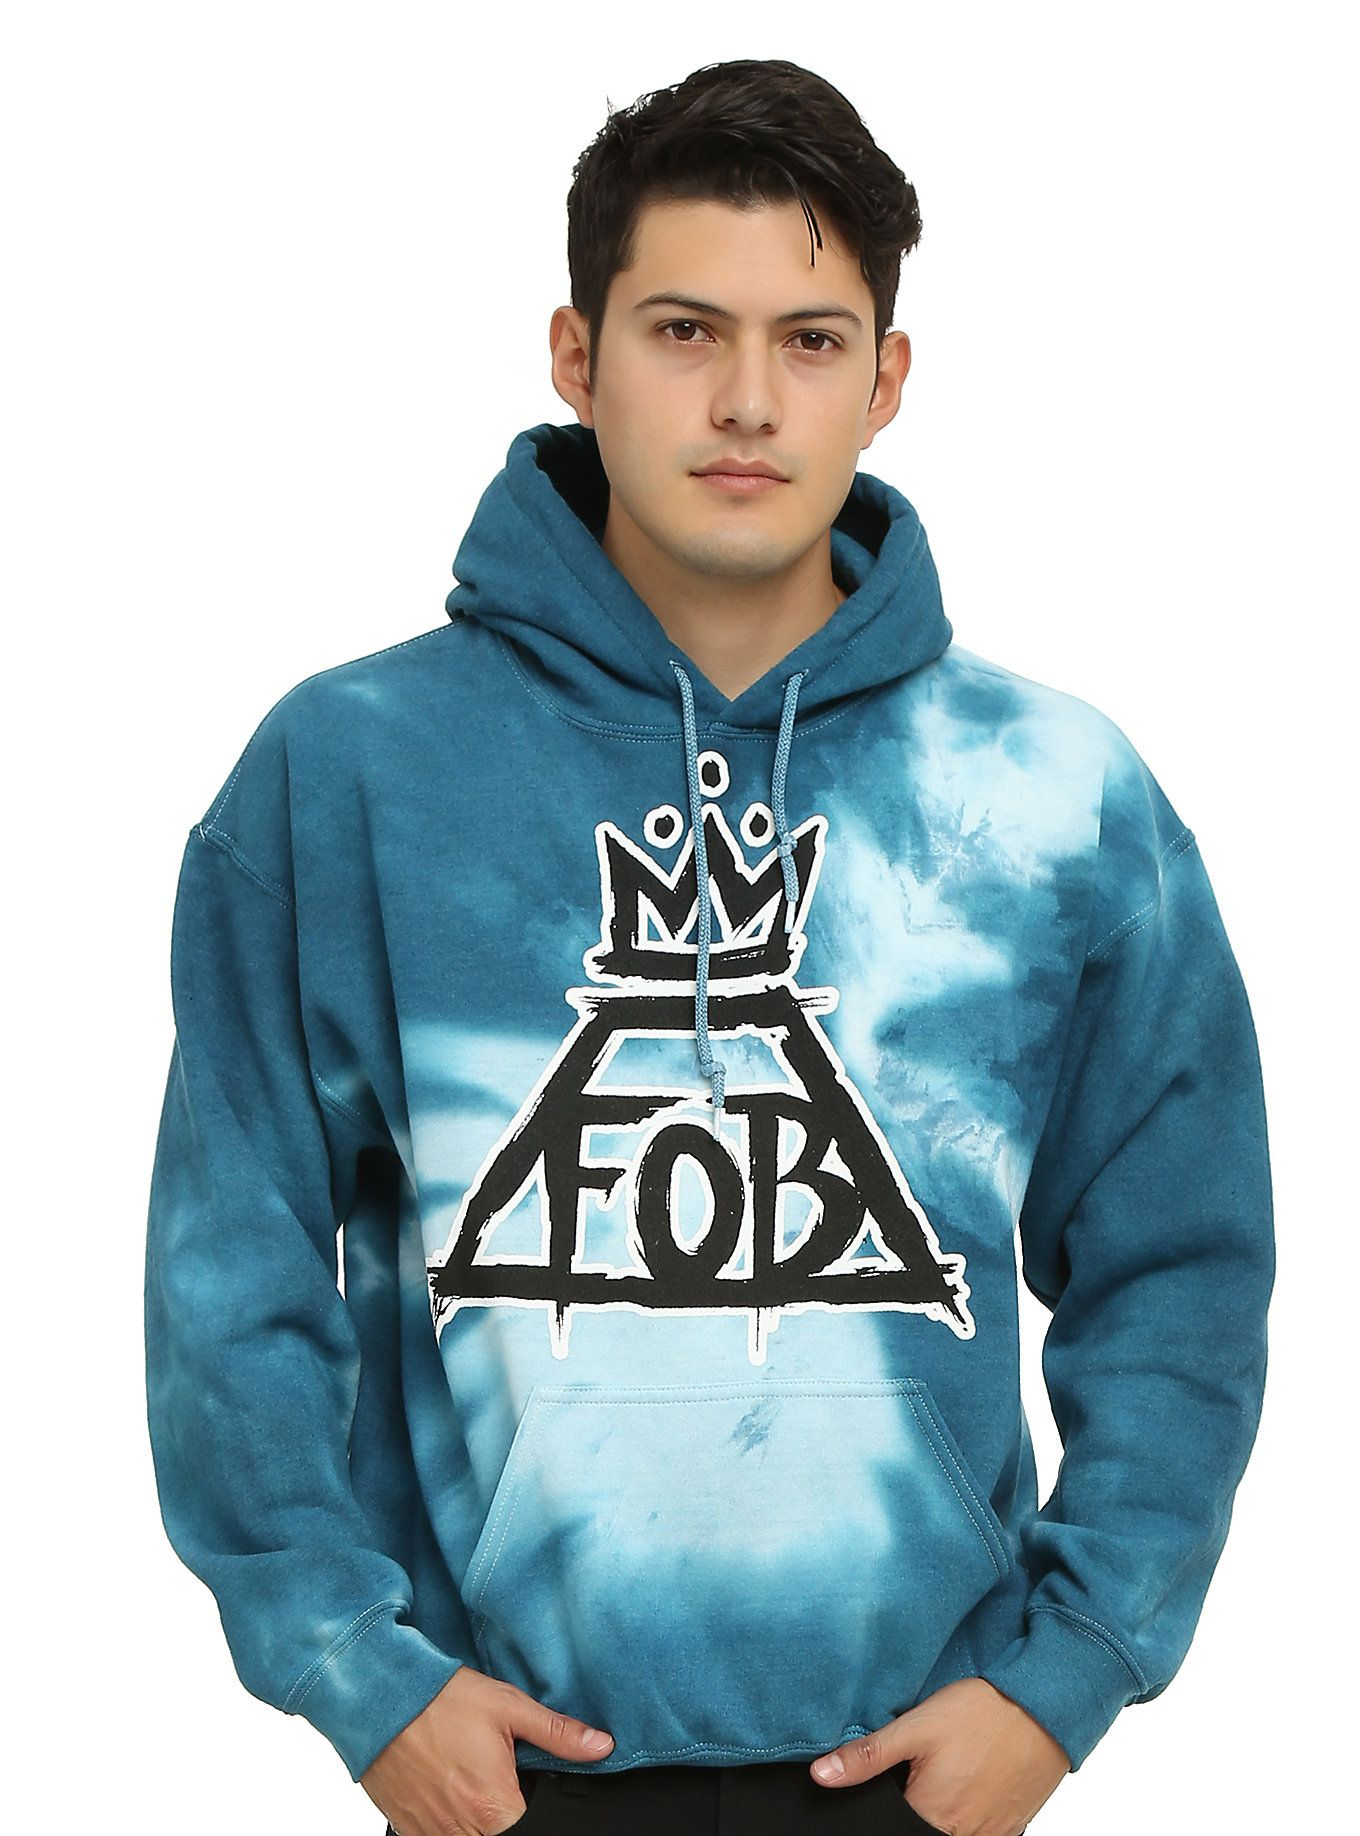 how to tie dye a hoodie with a logo